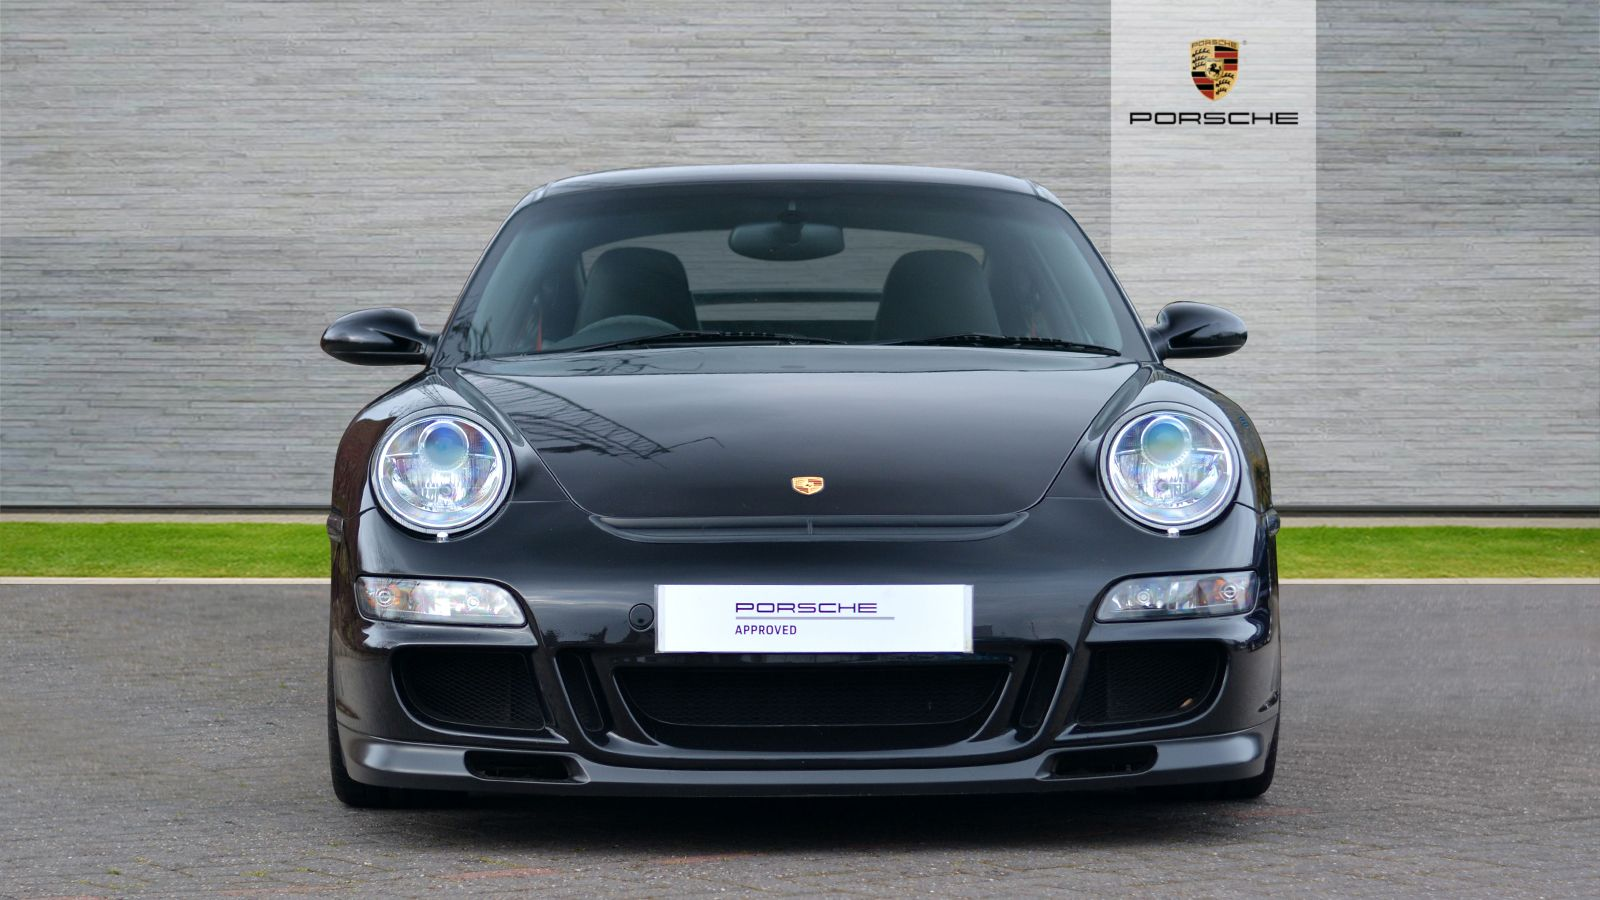 Porsche Approved with Grilles Sutton Coldfield 1600x900.jpg